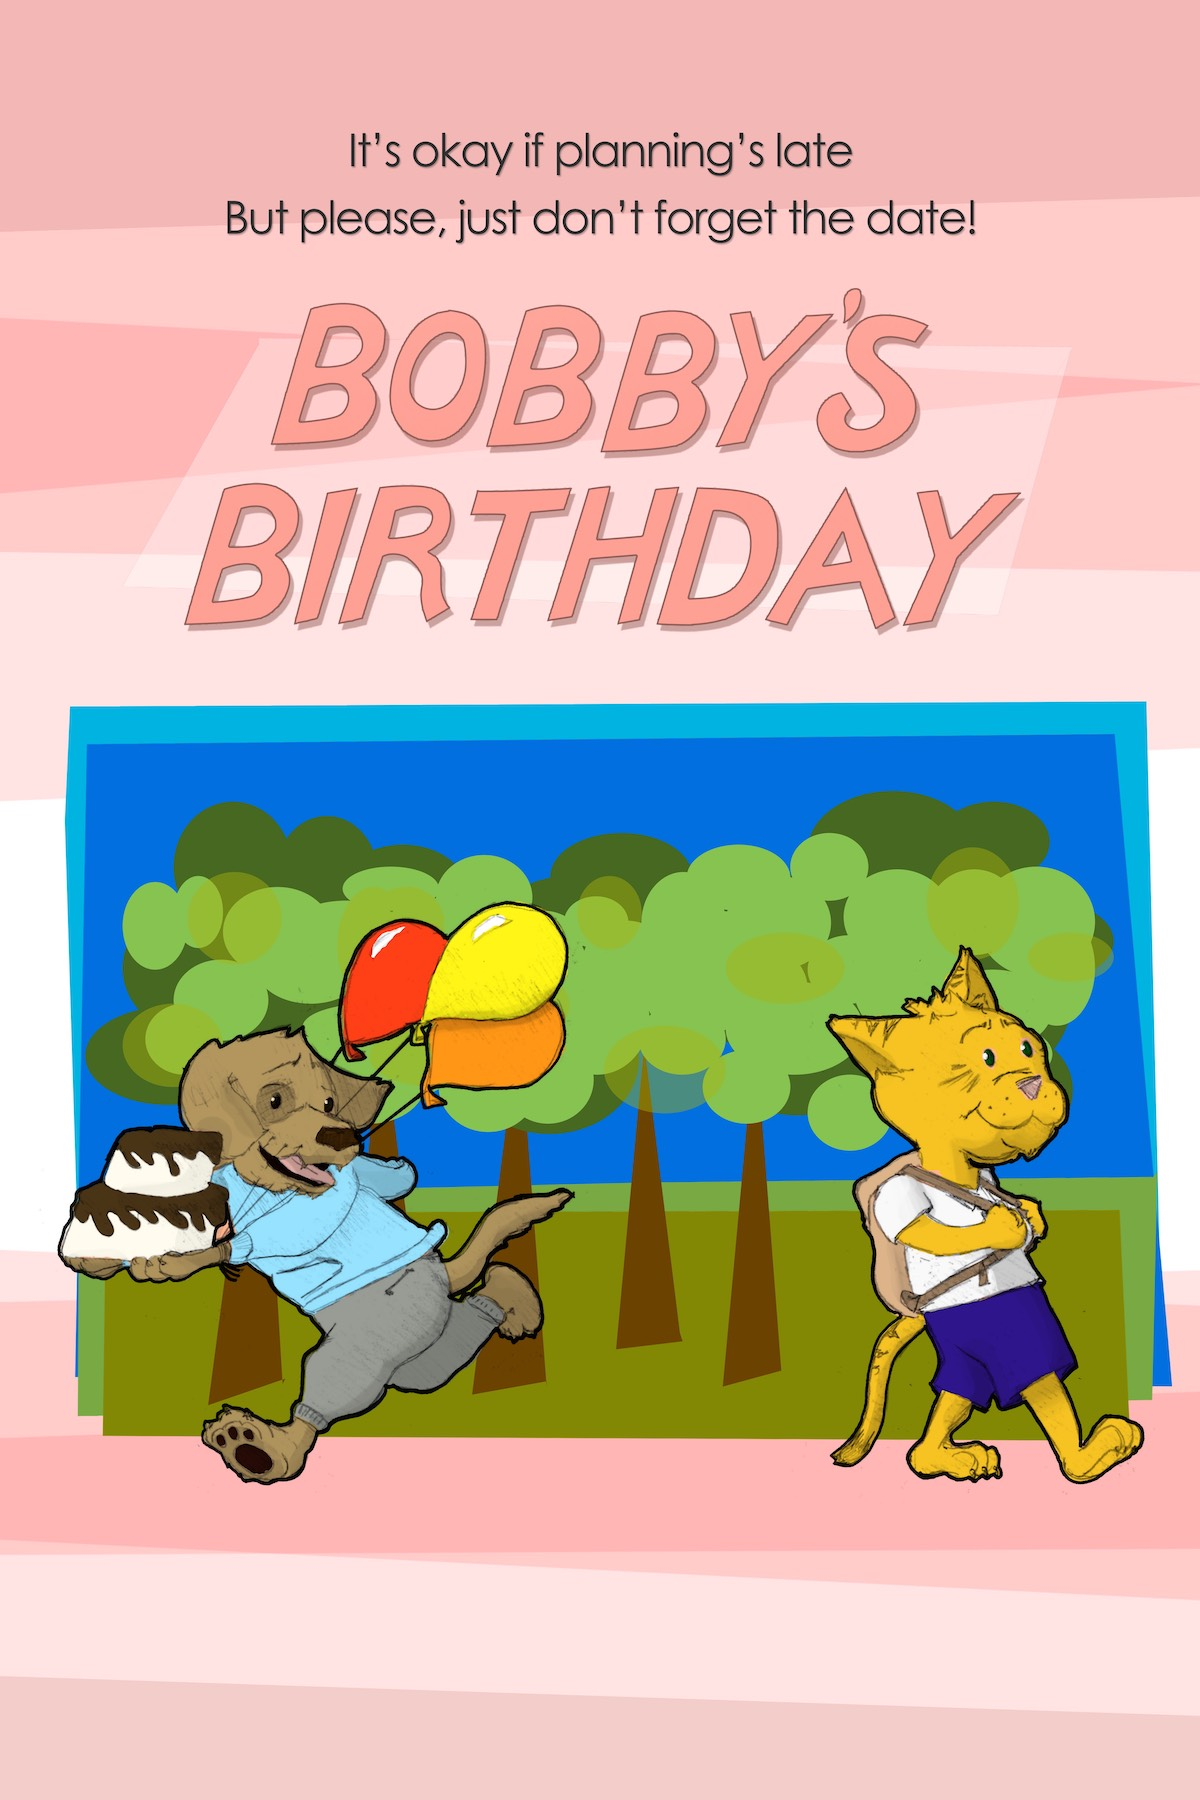 Bobby's Birthday